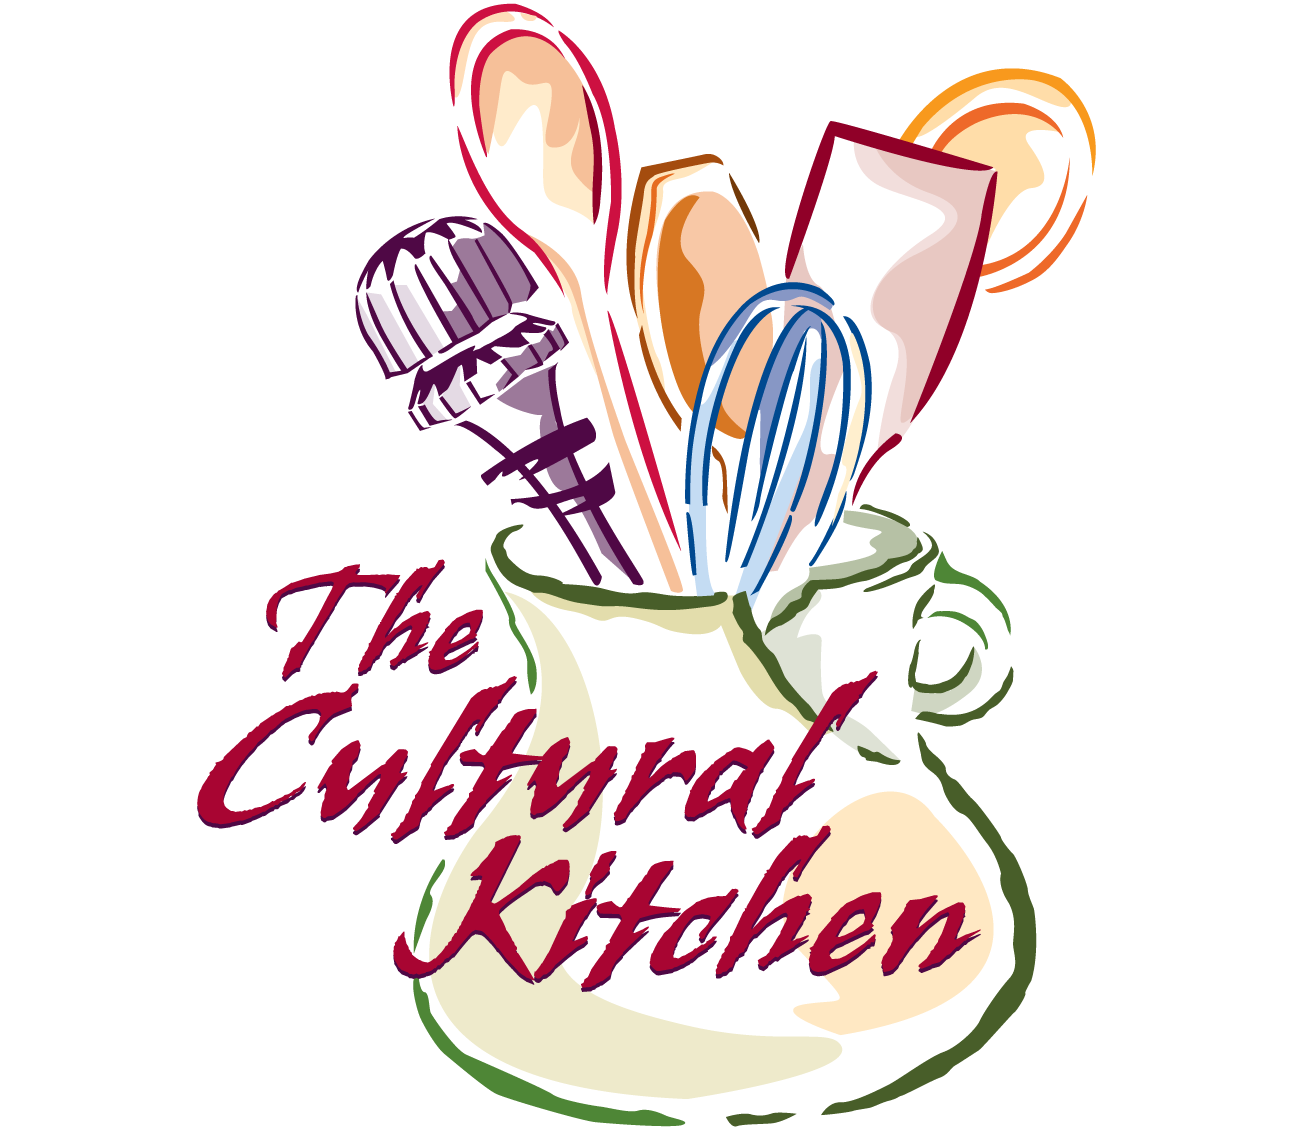 Clipart kitchen family kitchen. About the cultural